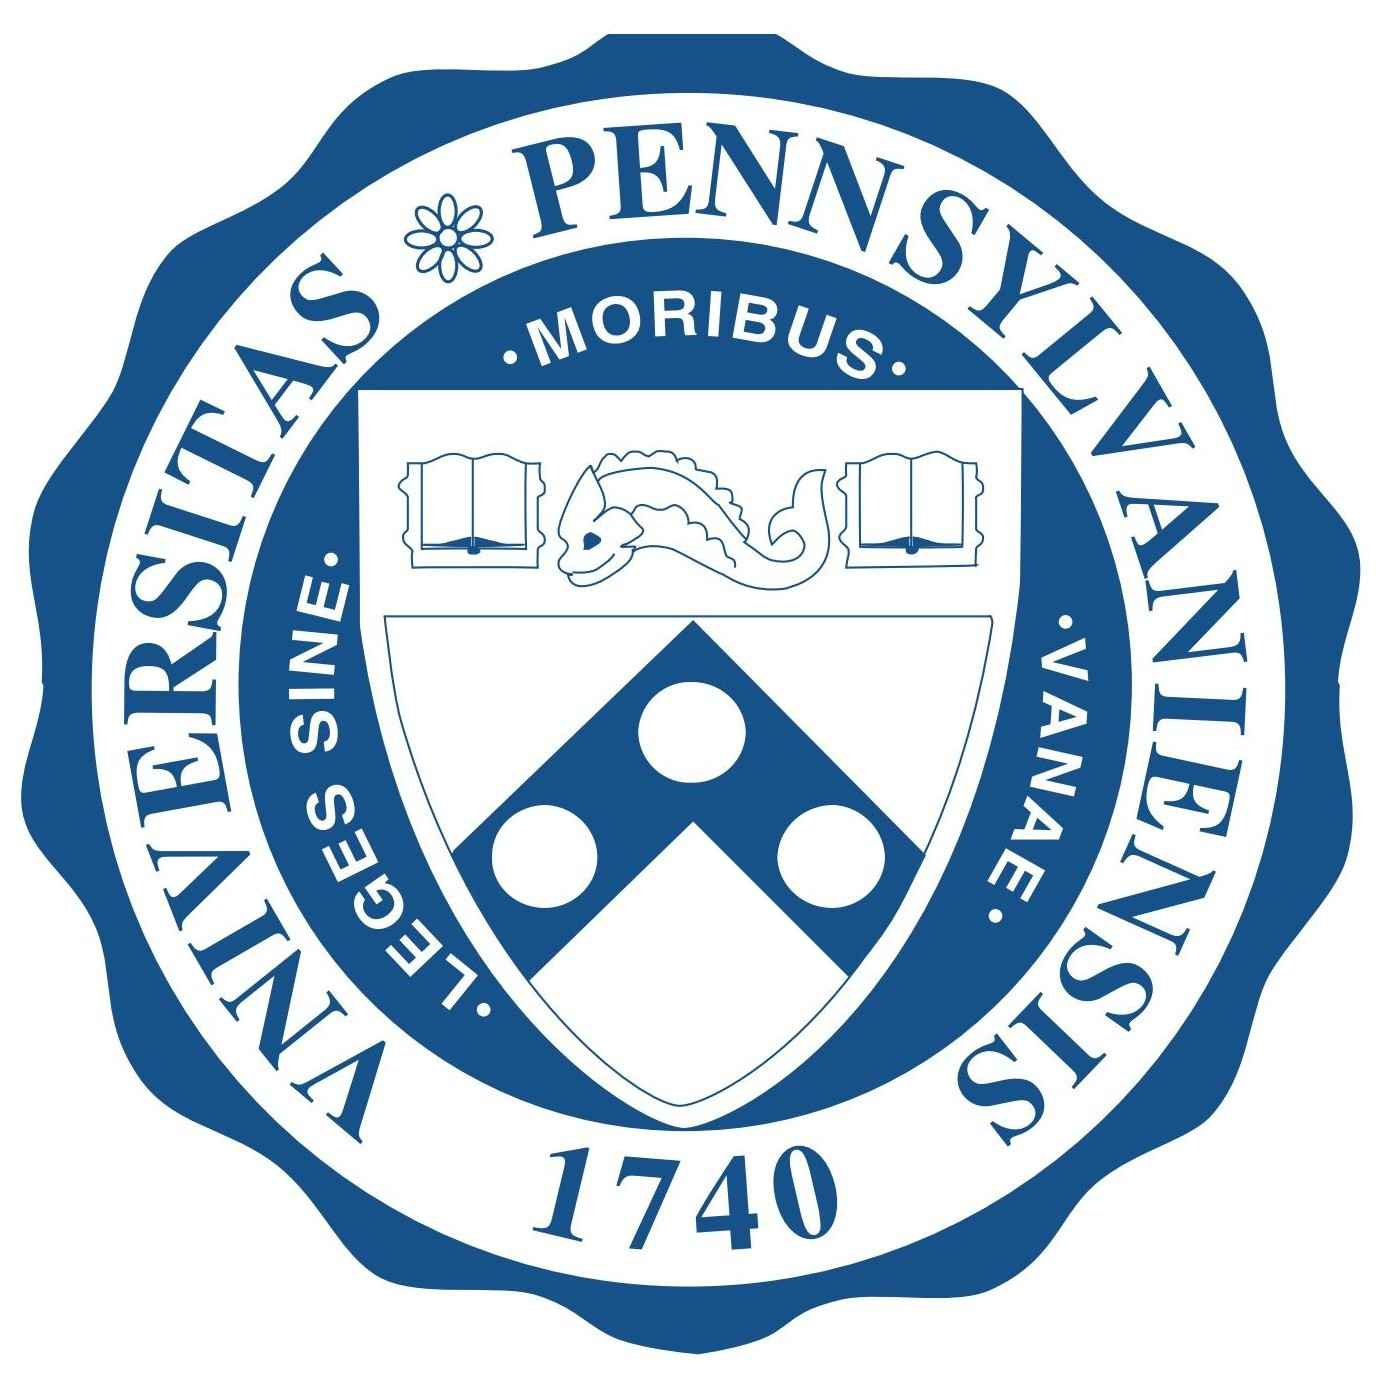 UPeen Logo and Seals [University of Pennsylvania] Download.